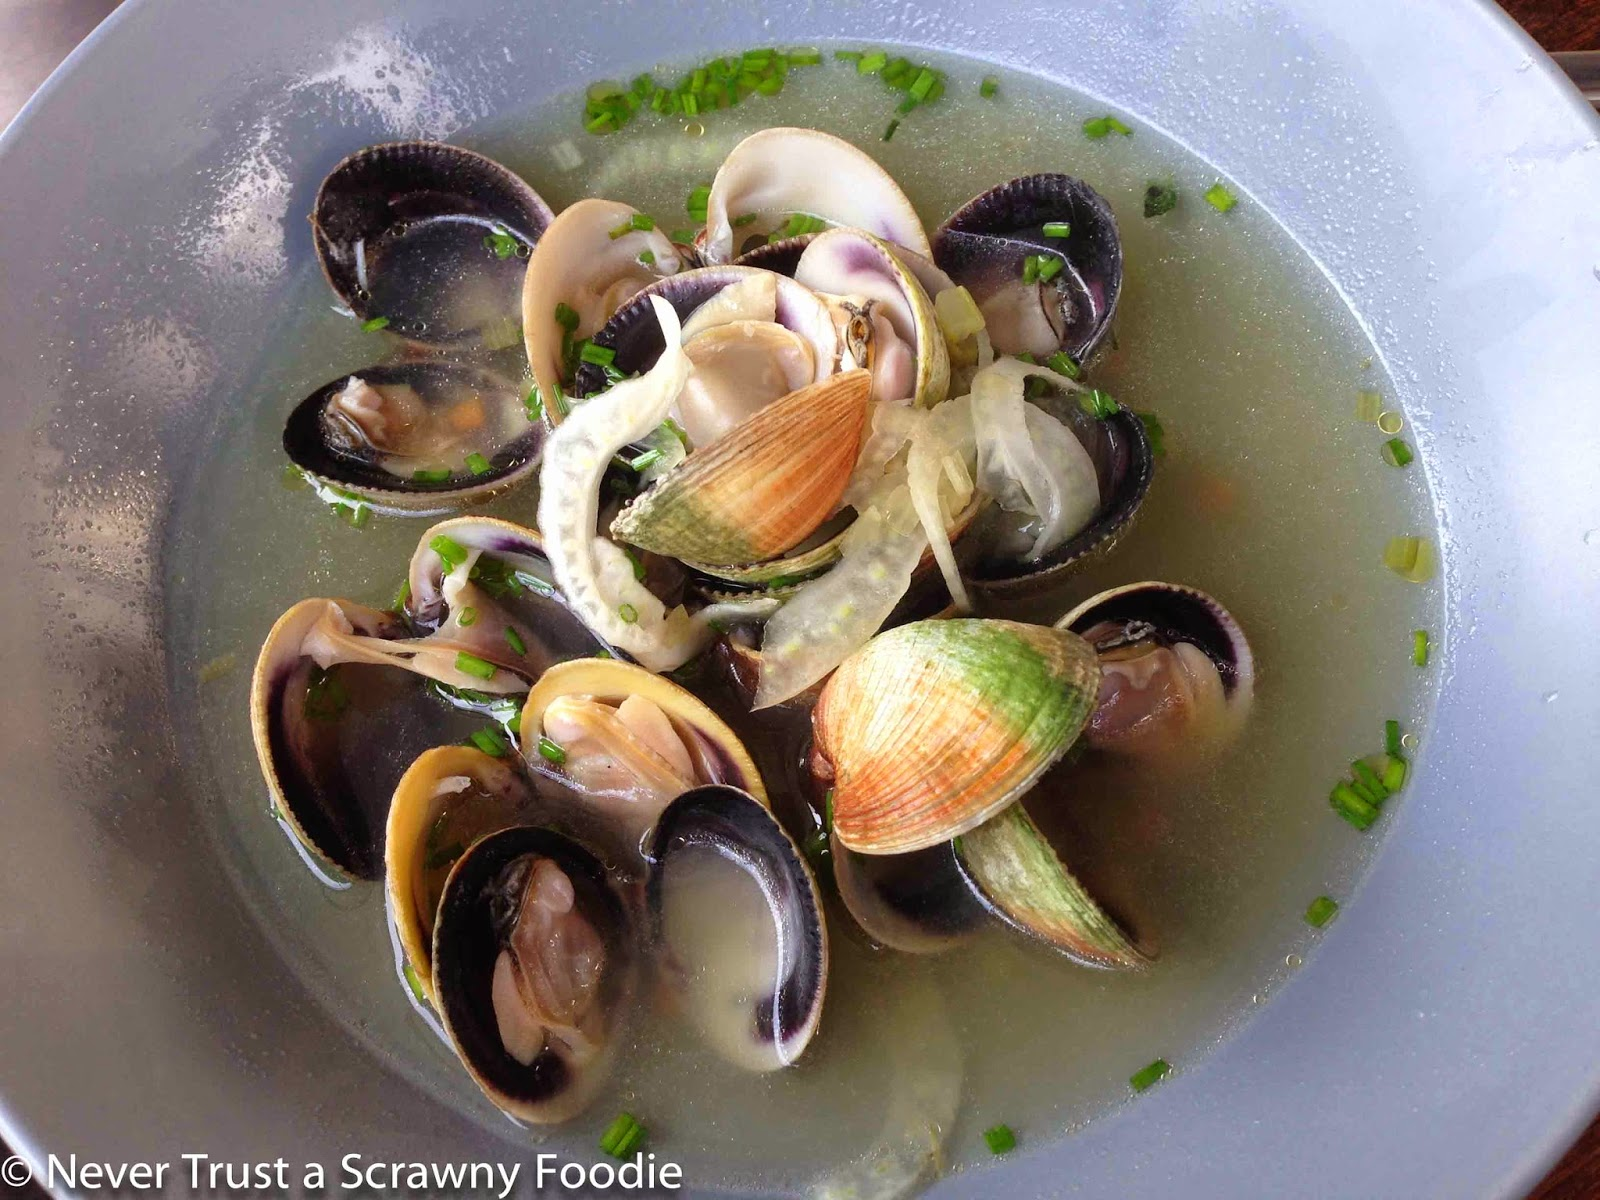 clams in soup - light broth sweetened by the clams and a bit of fennel ...